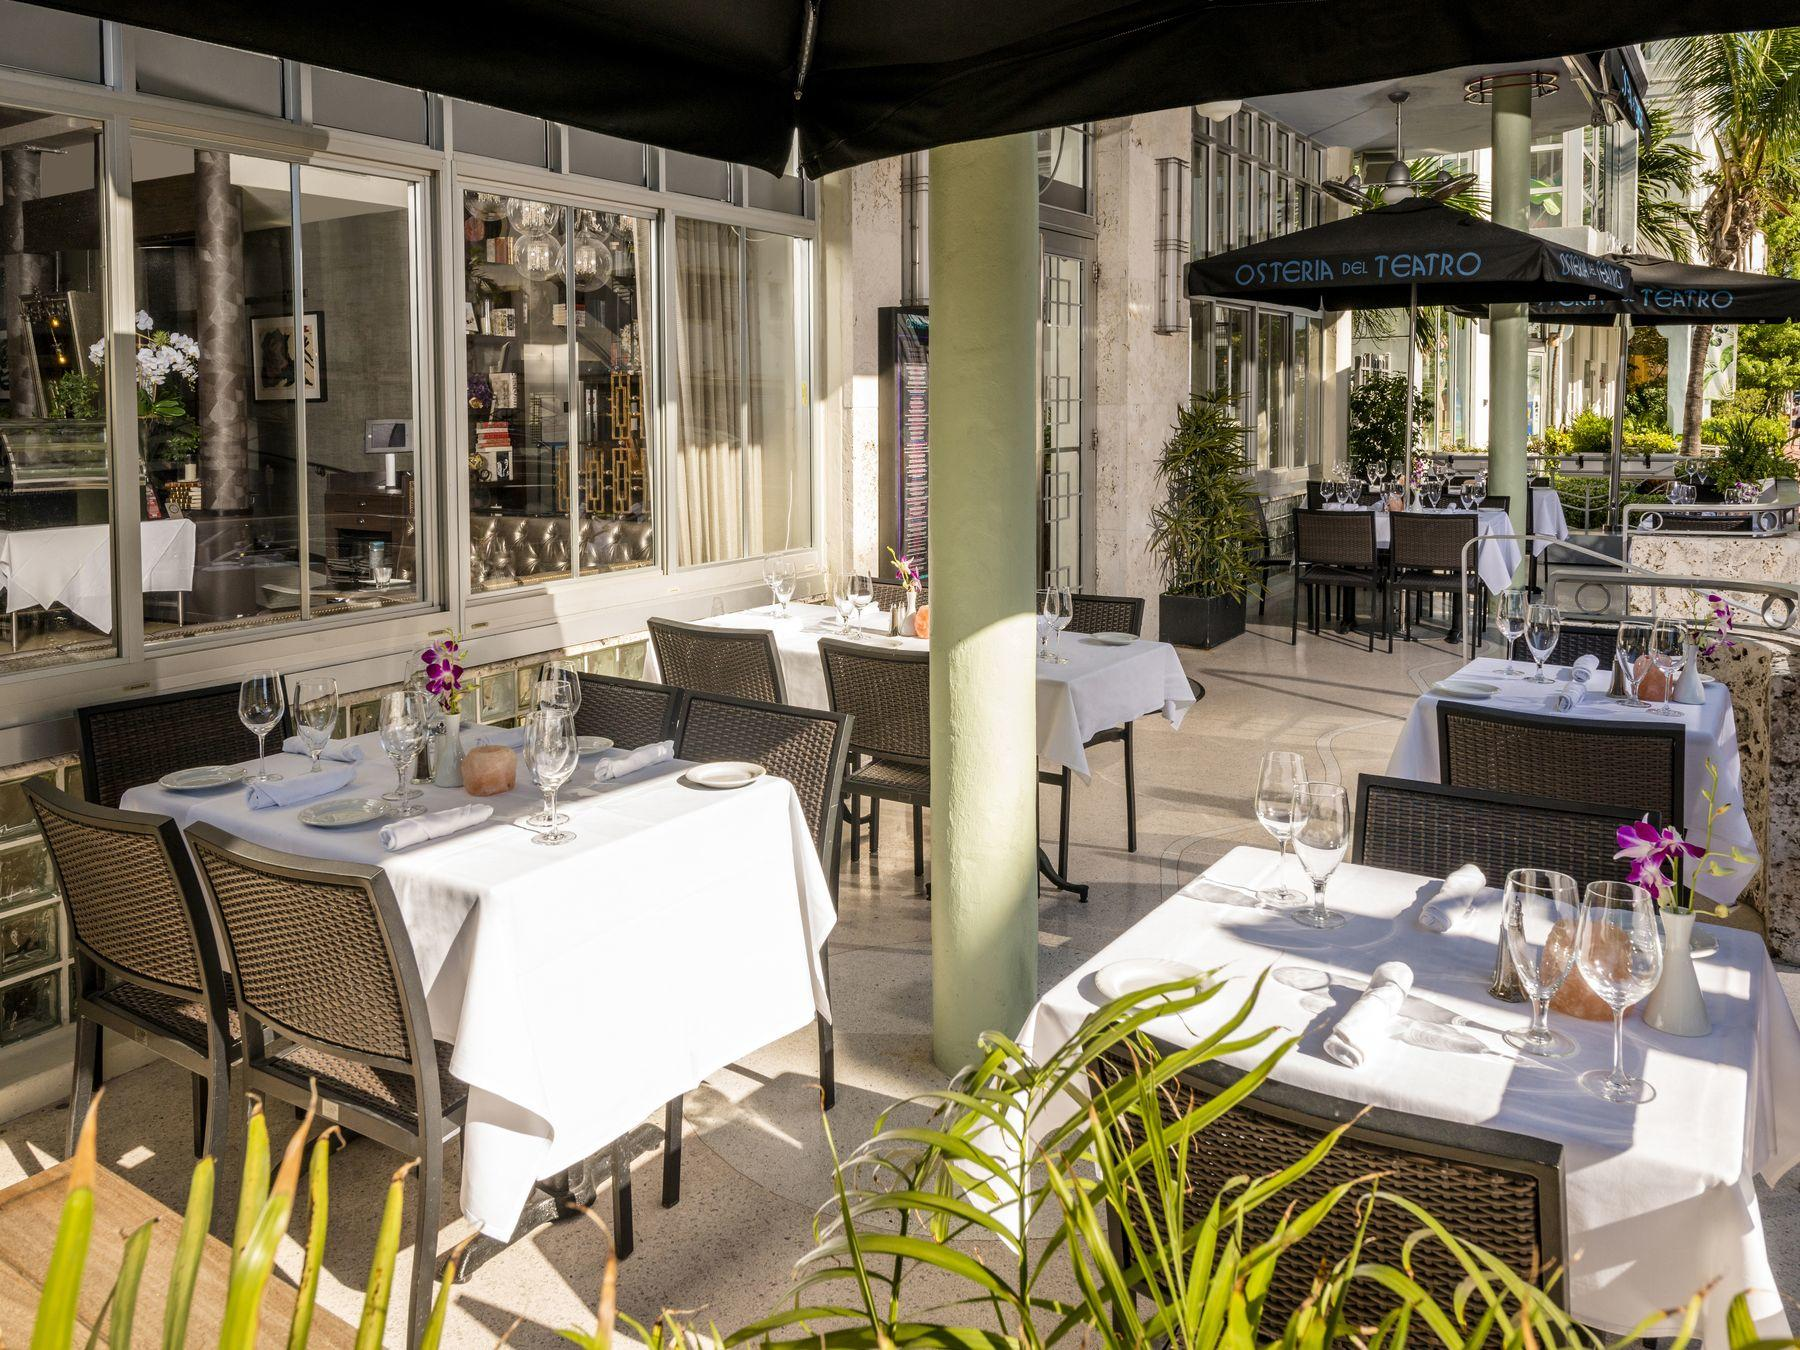 outside restaurant and tables with white table cloths